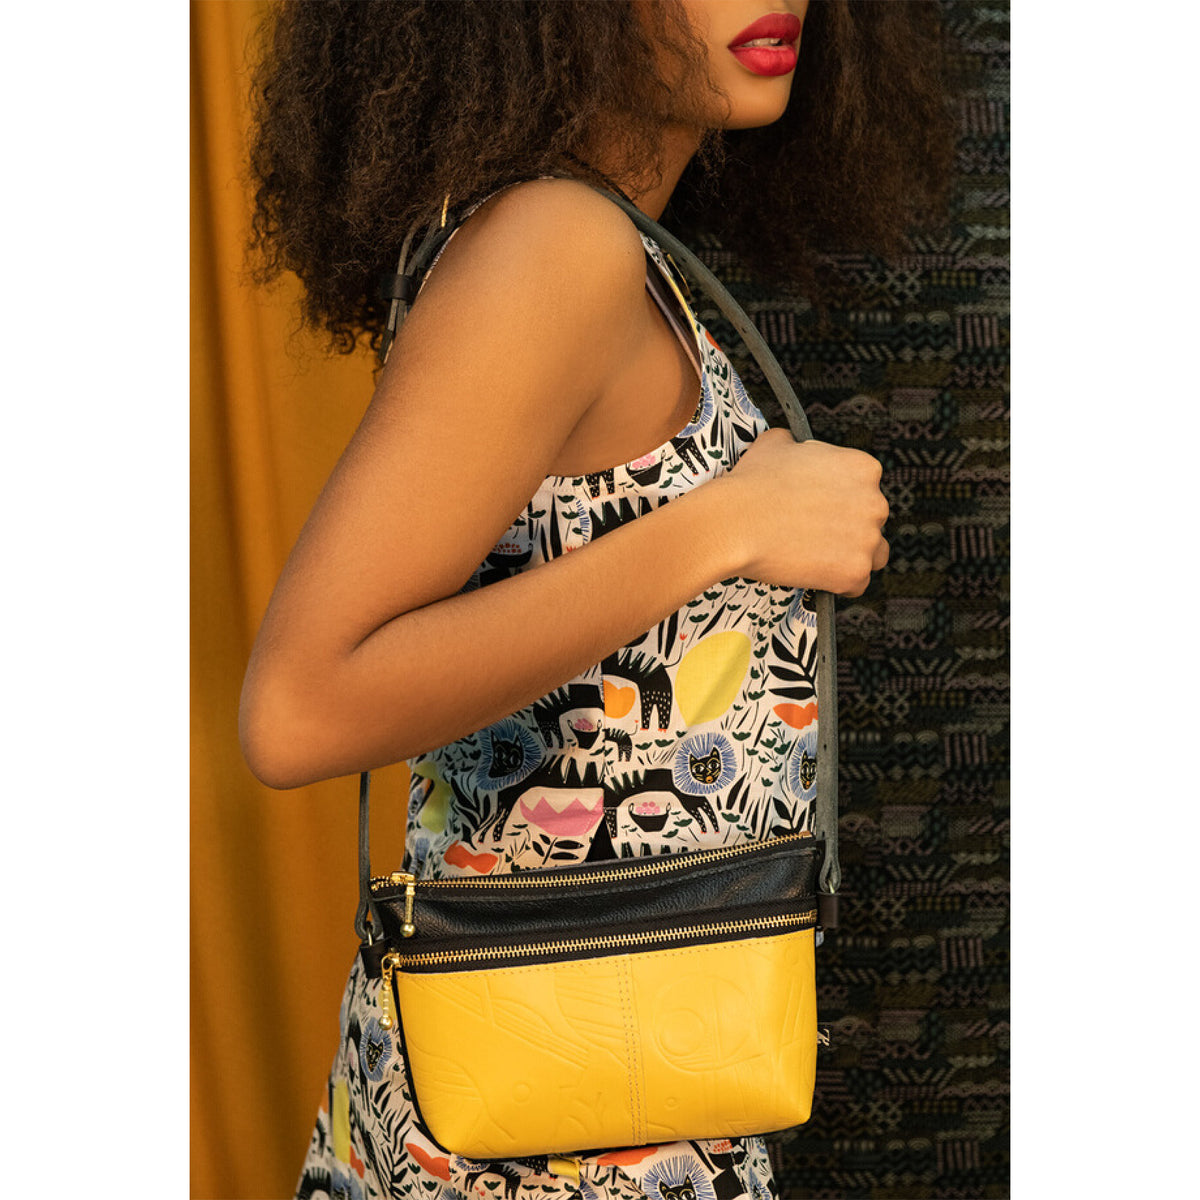 Model Wearing a Glendale Waist Pouch / Bag / Clutch - Yellow / Recycled Leather - Sold by Chic & Basta